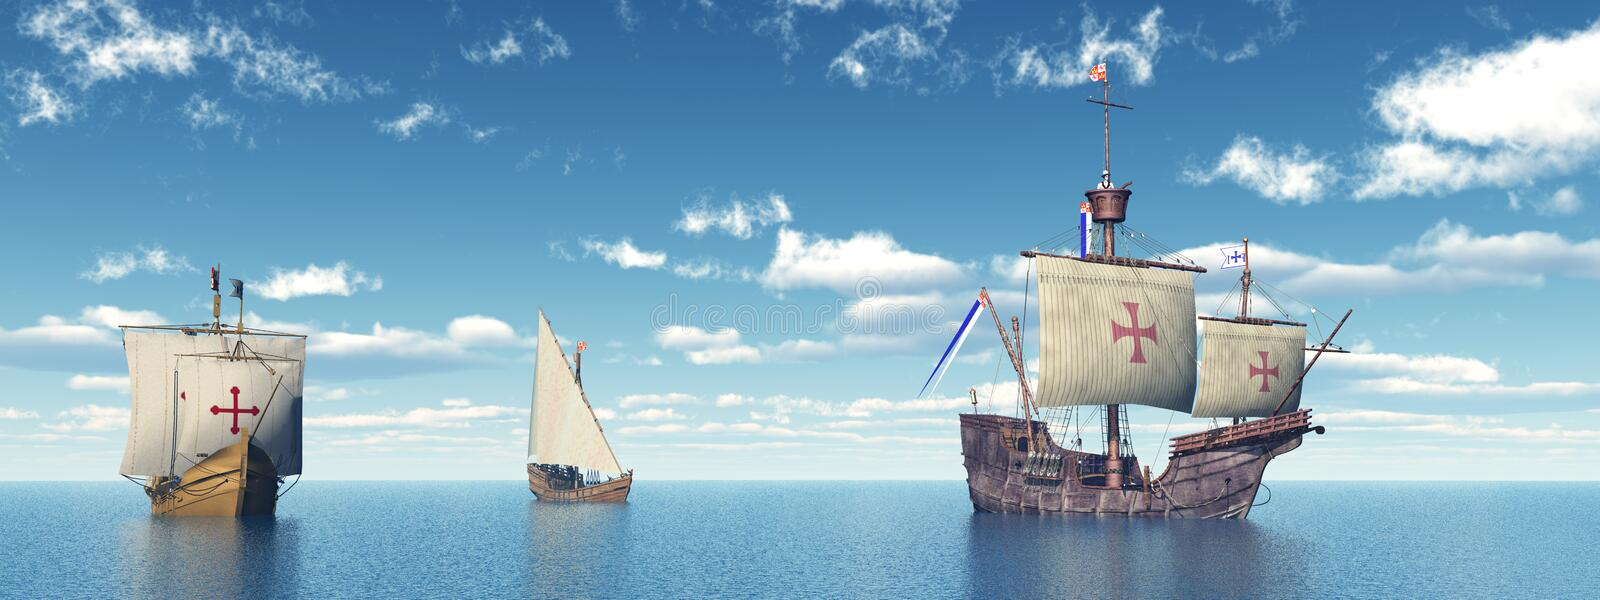 Santa Maria, Nina and Pinta of Christopher Columbus stock illustration